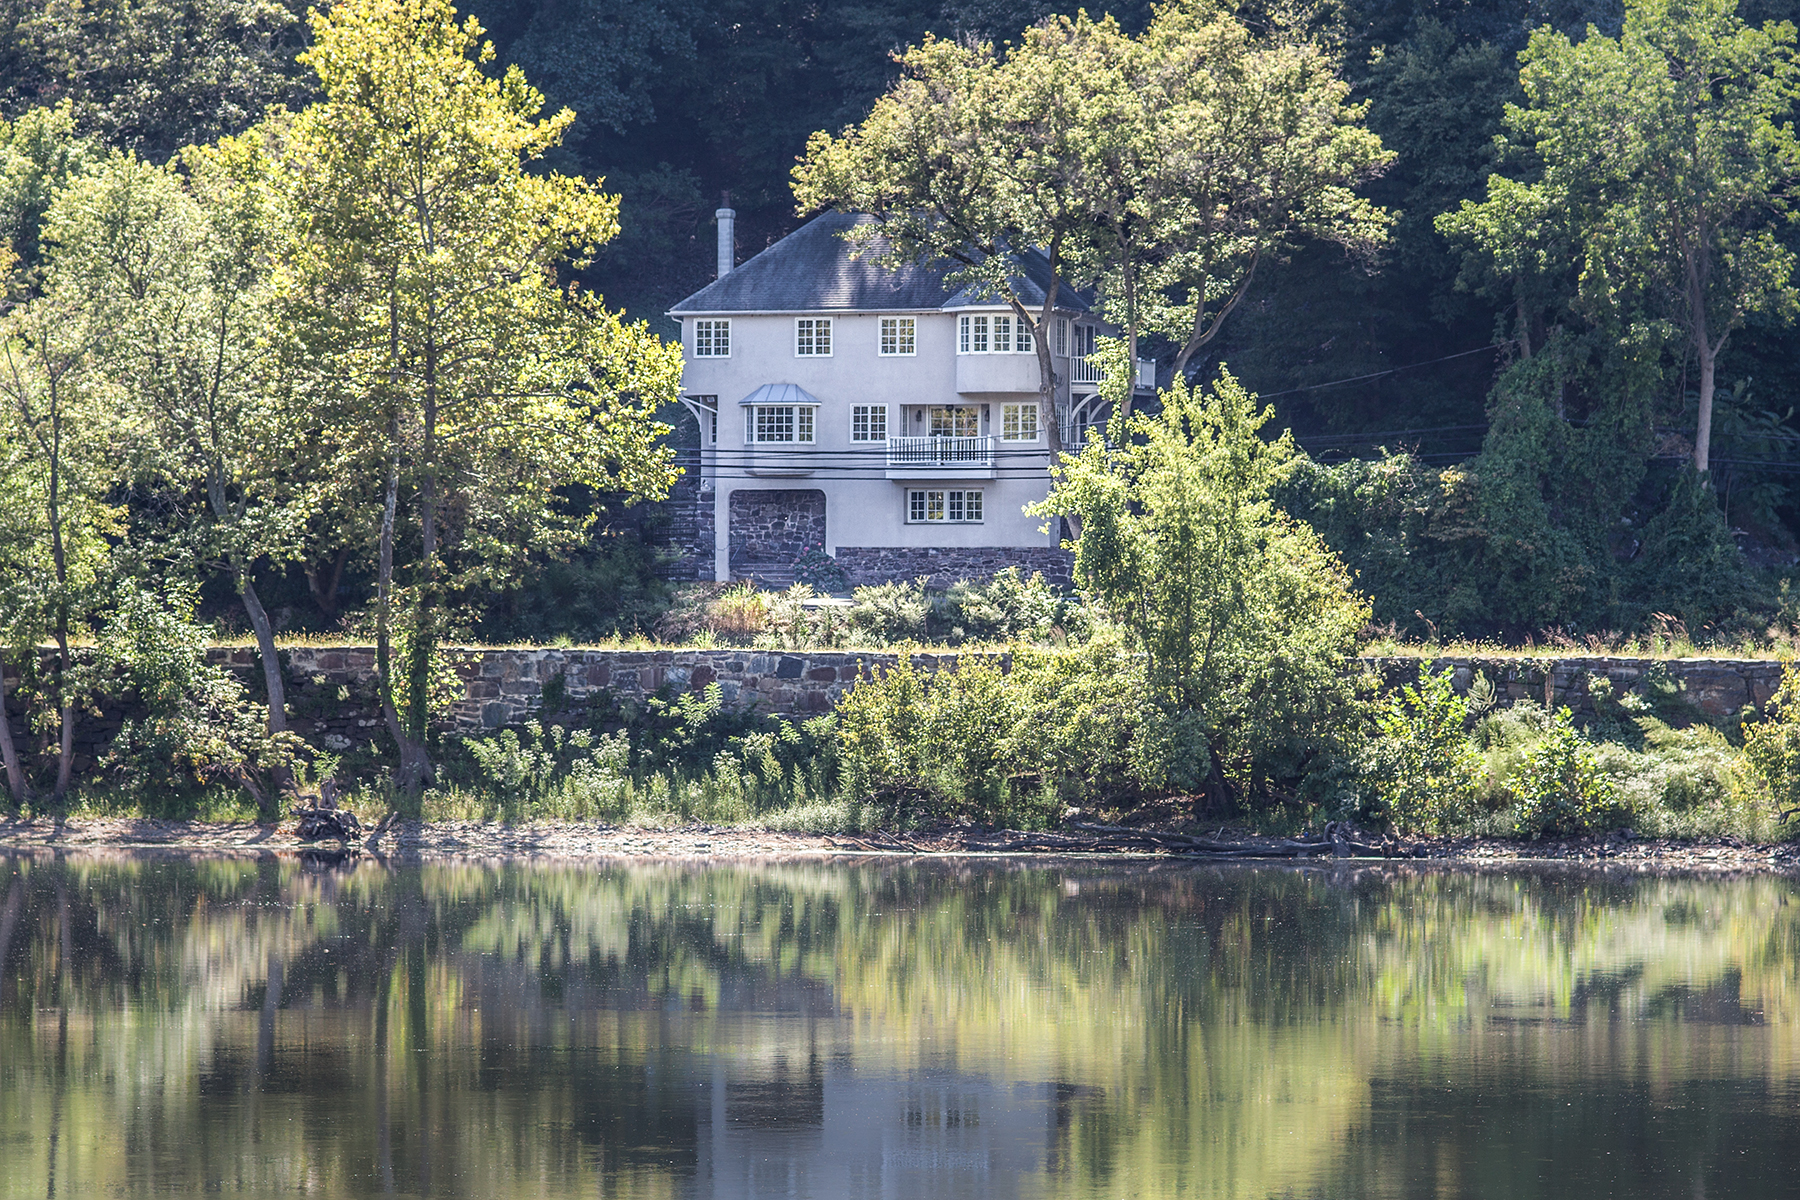 Single Family Home for Sale at Riverview Residence 4386 RIVER RD New Hope, Pennsylvania, 18938 United States